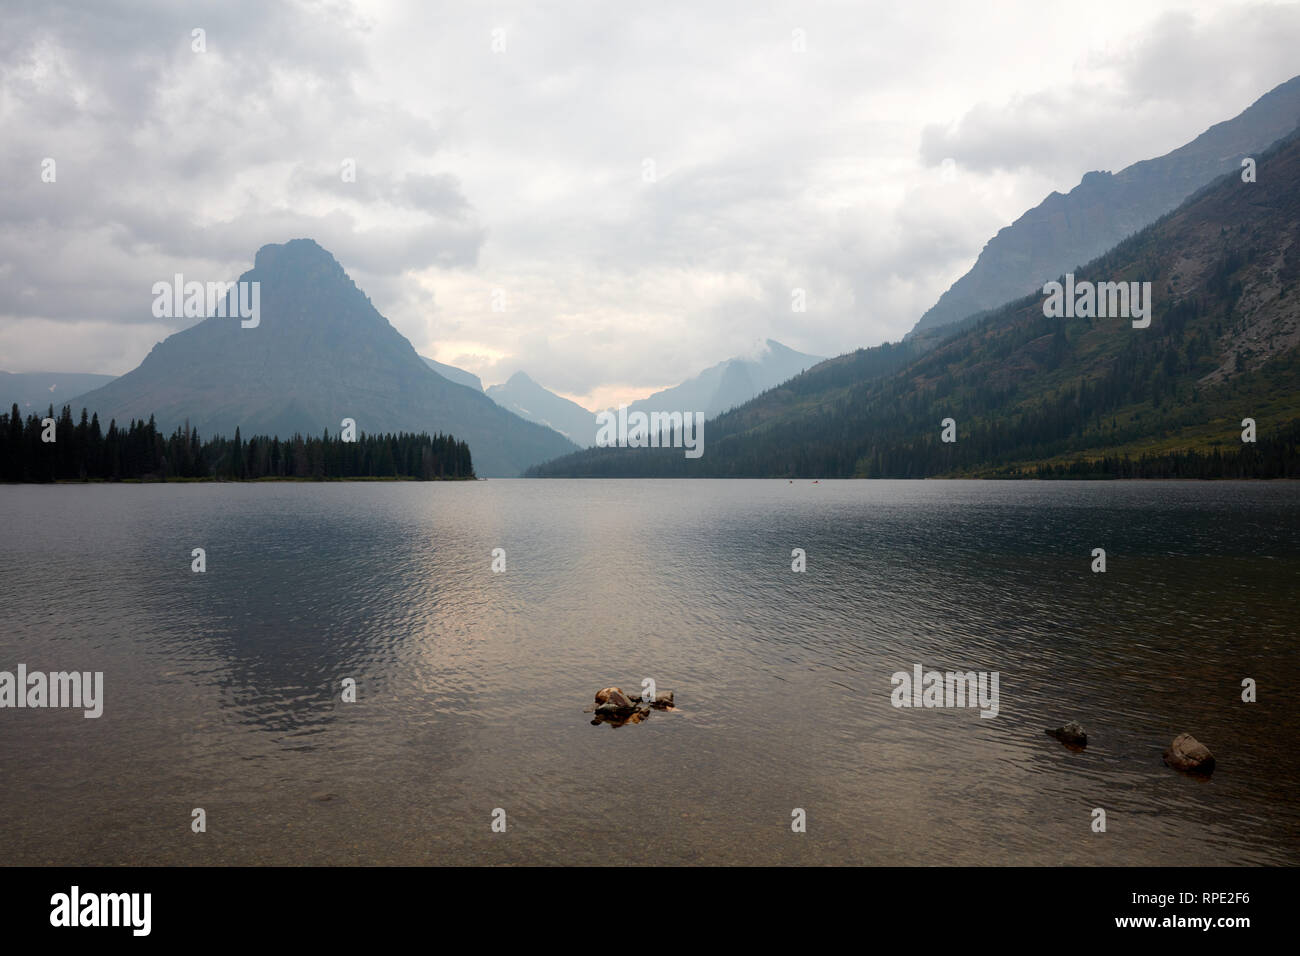 Two Medicine Lake in Glacier National Park in Montana with clouds and smoke from the Howe Ridge fire obscuring the view - Stock Image